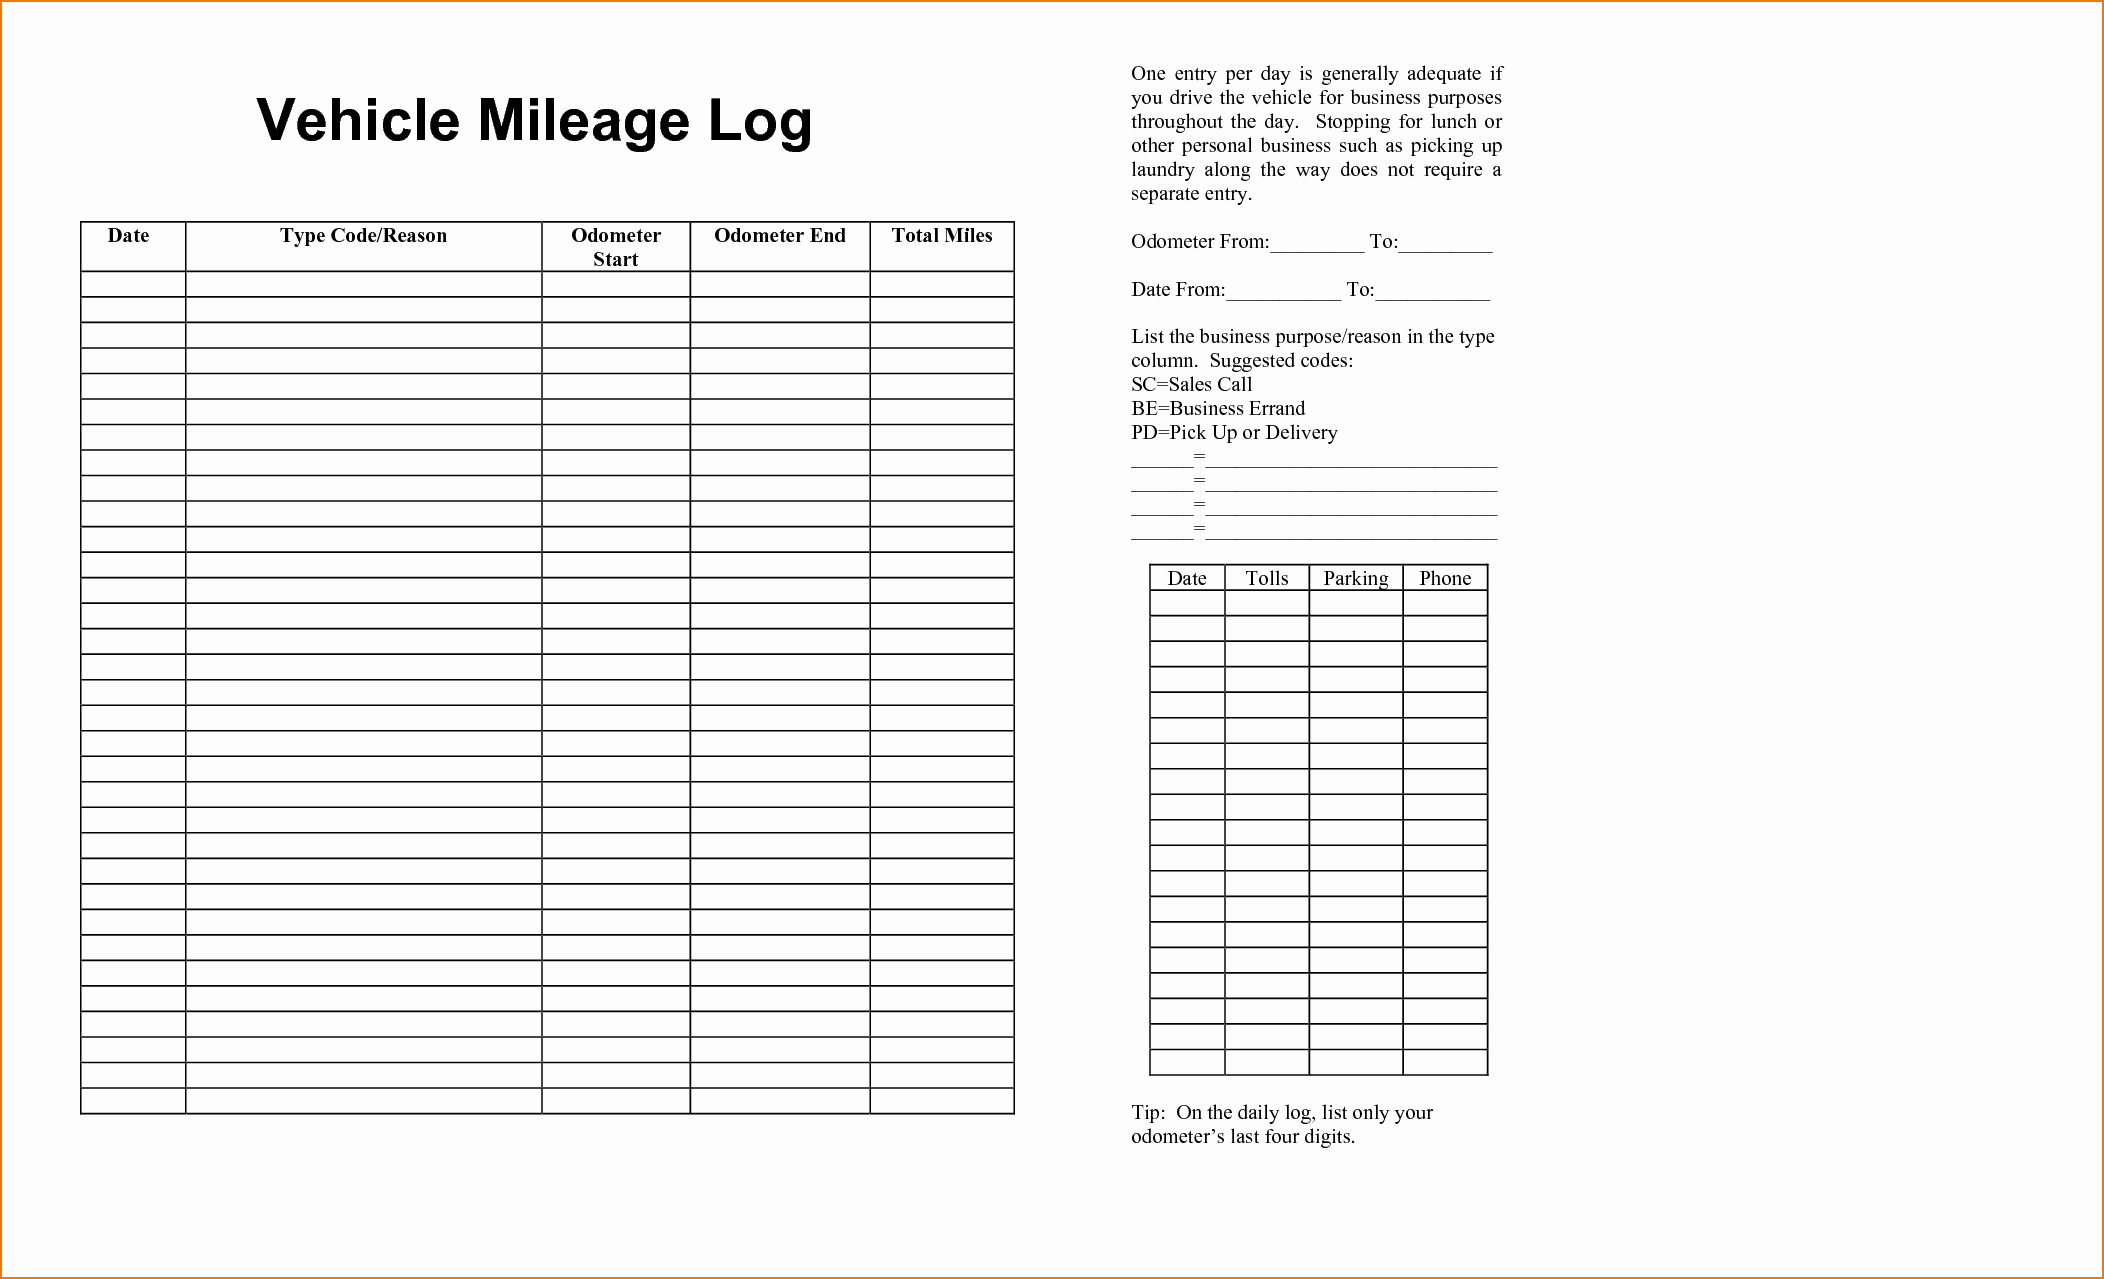 Gas Mileage Log Sheet Free Elegant 6 Vehicle Mileage Log